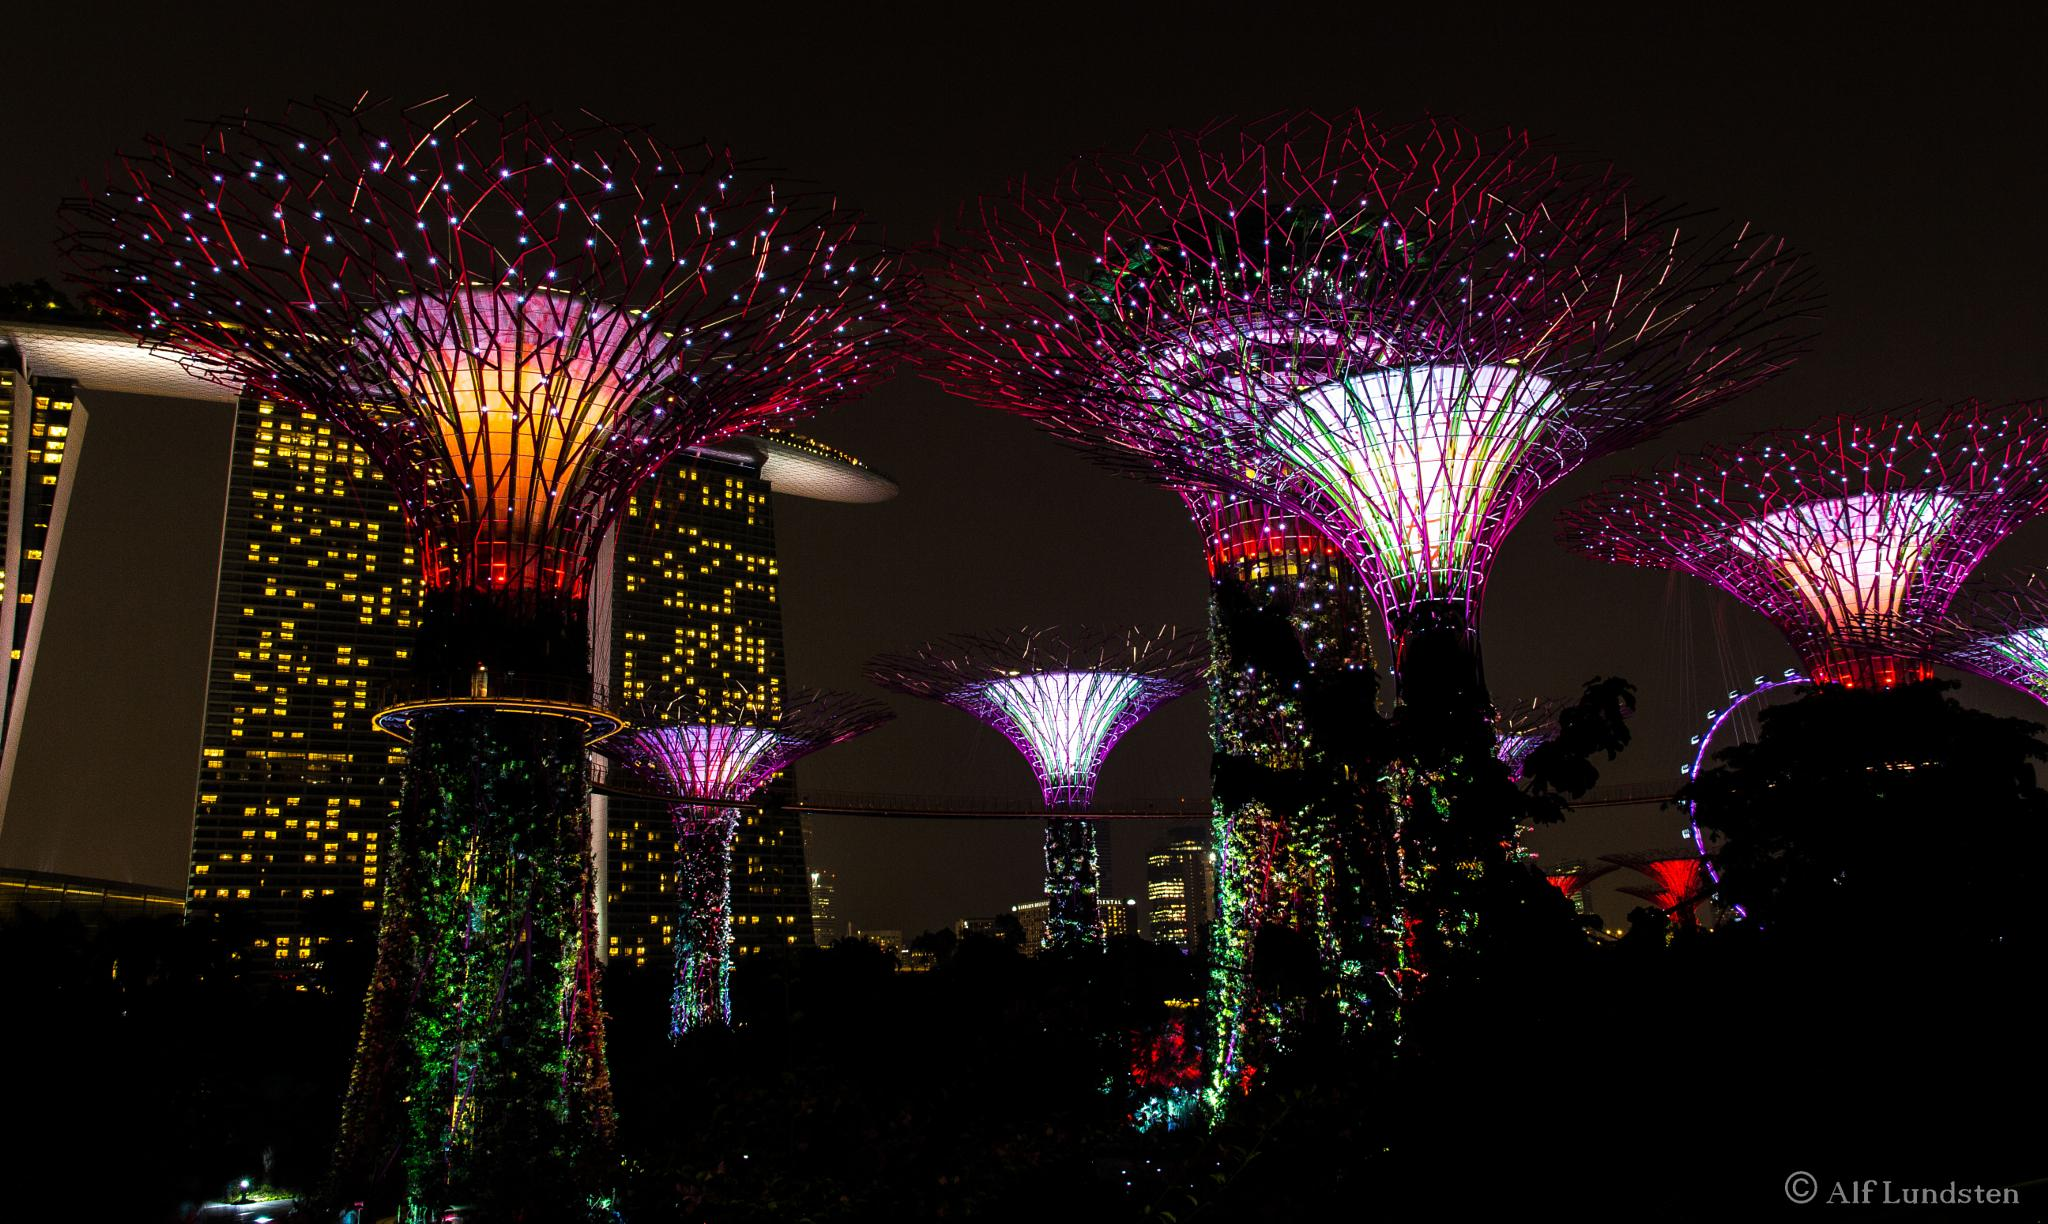 SuperSingapore by alf lundsten